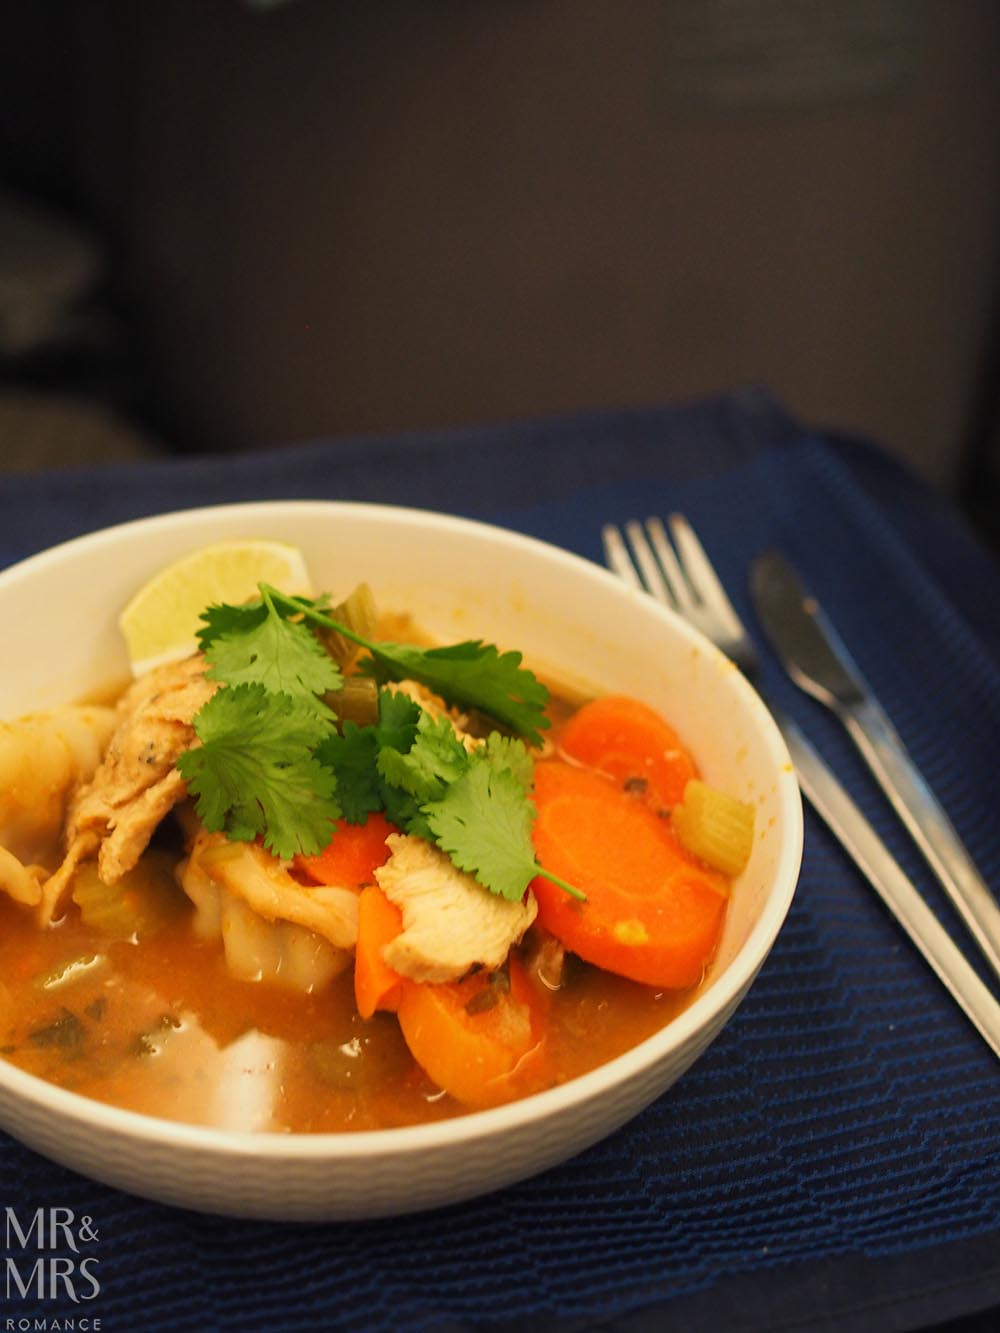 United Airlines business class United Polaris review - ginseng chicken bowl main